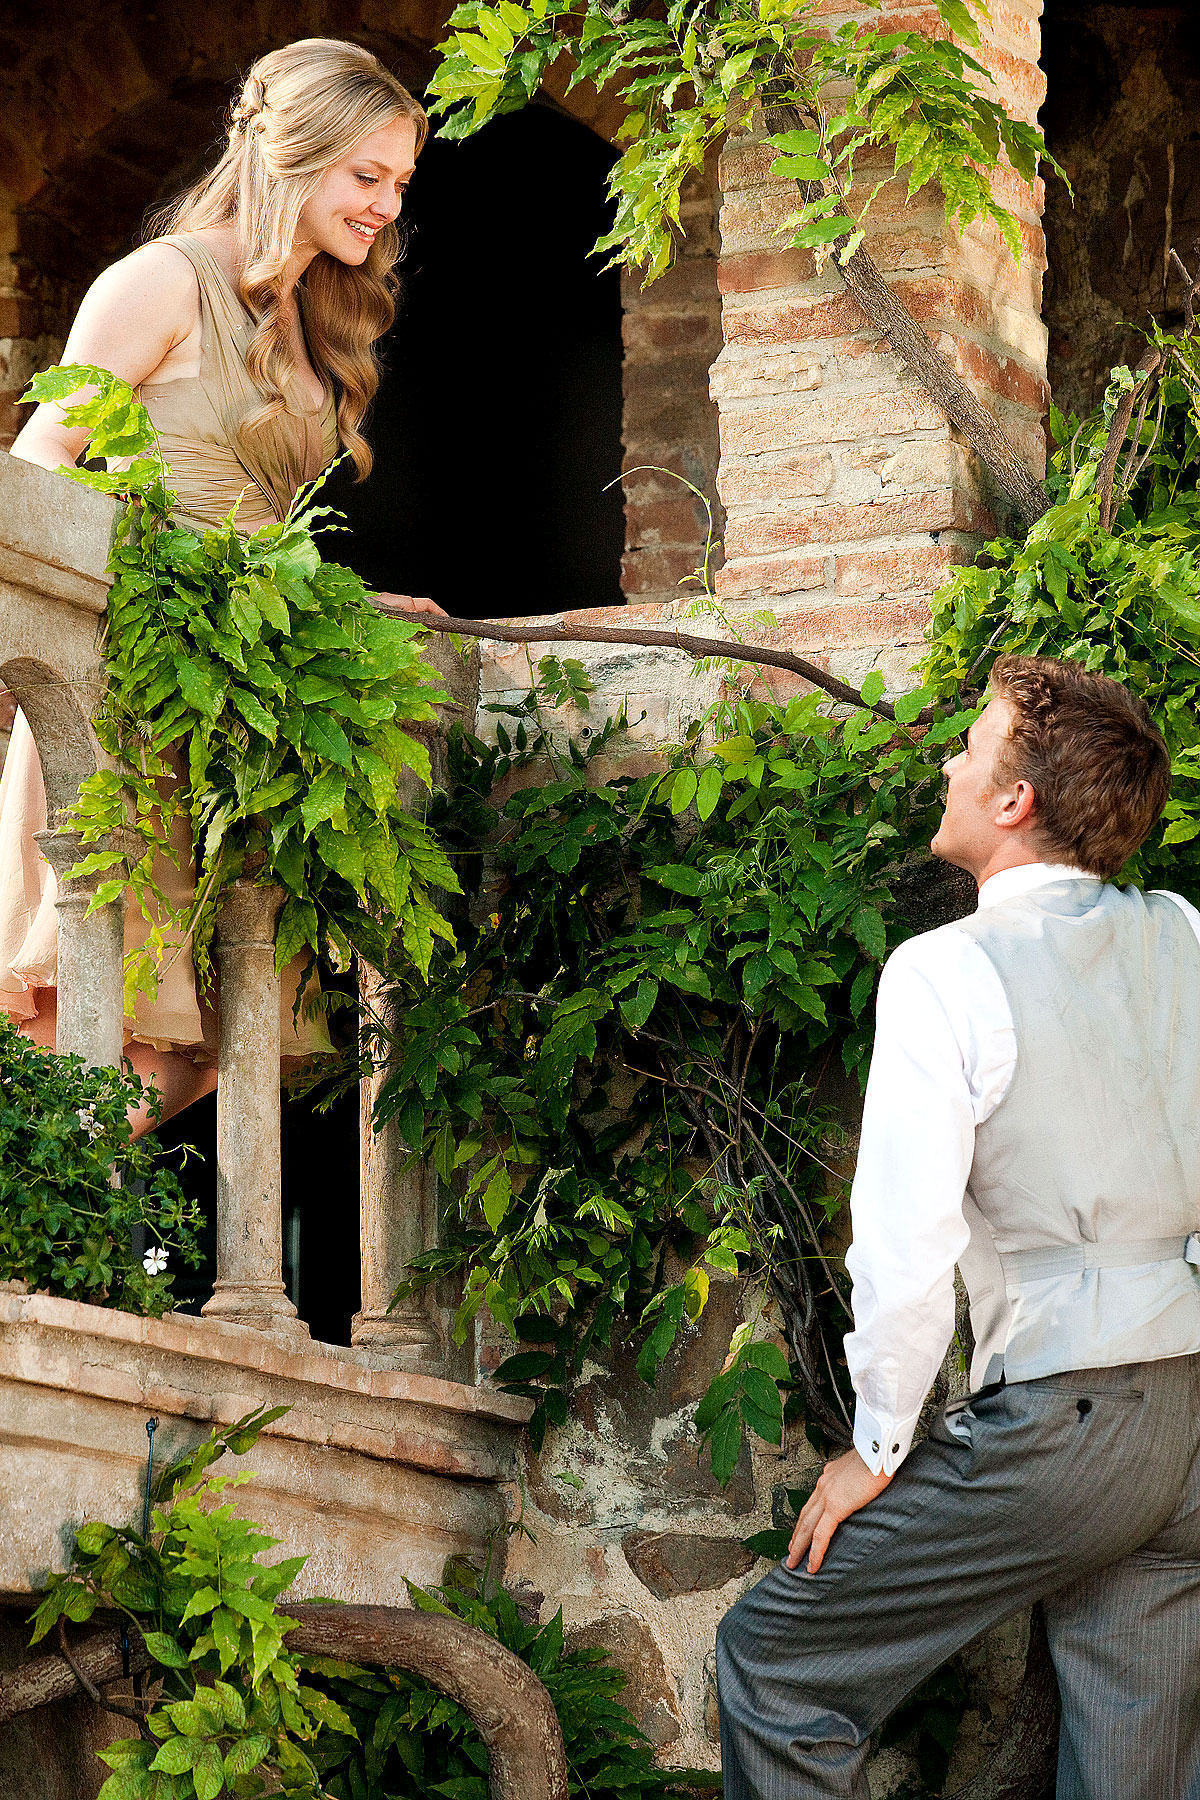 https://rumahdiksi.files.wordpress.com/2012/01/letters-to-juliet-movie-masquerade-13430075-1200-1800-1.jpg